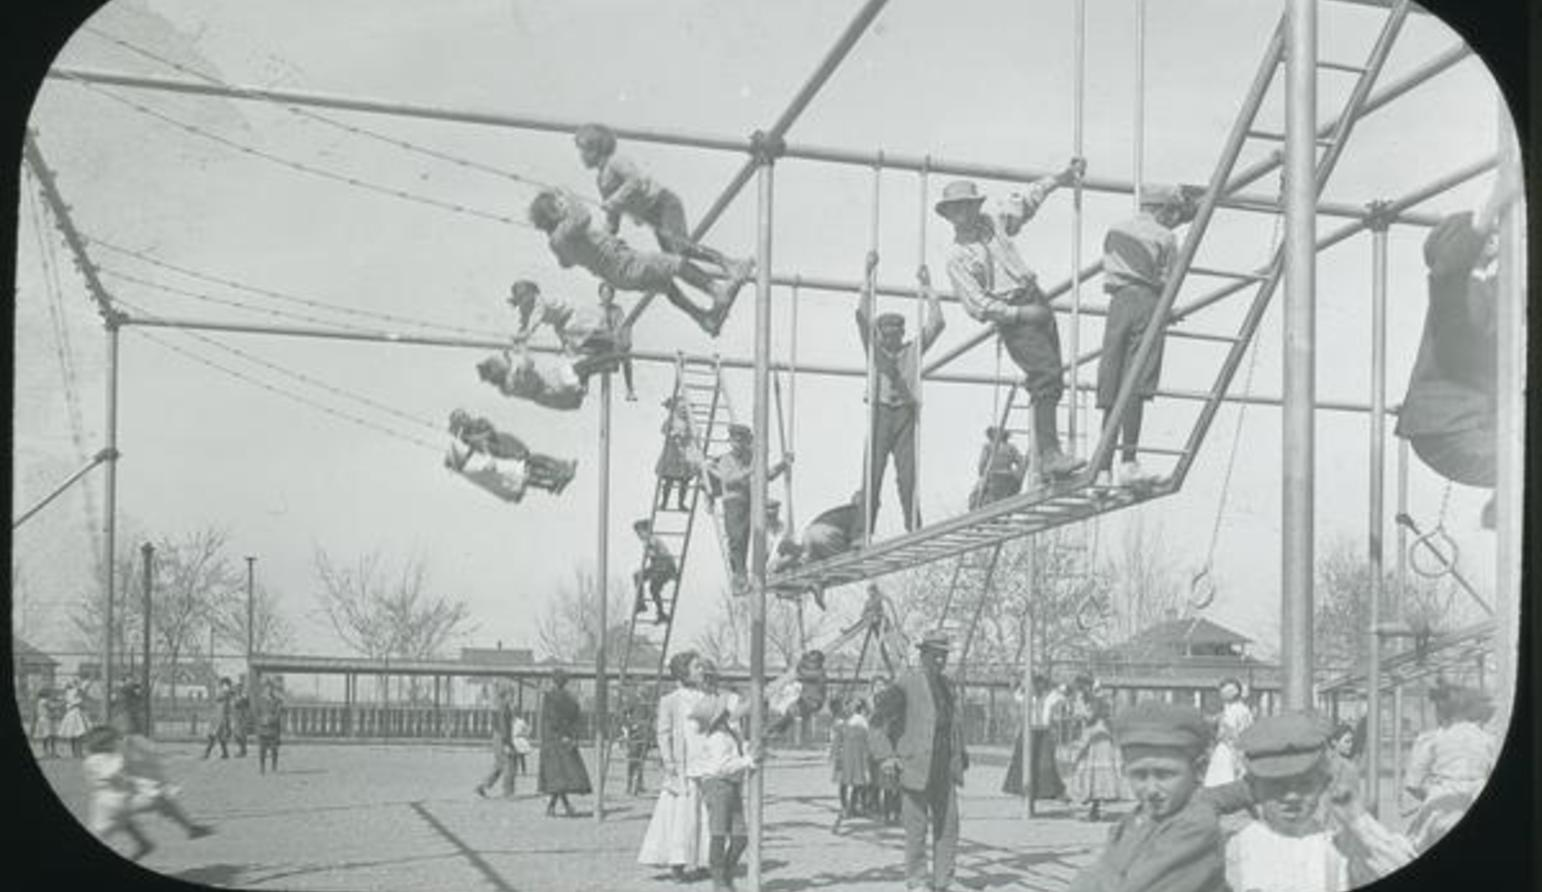 Children playing on outdoor playground